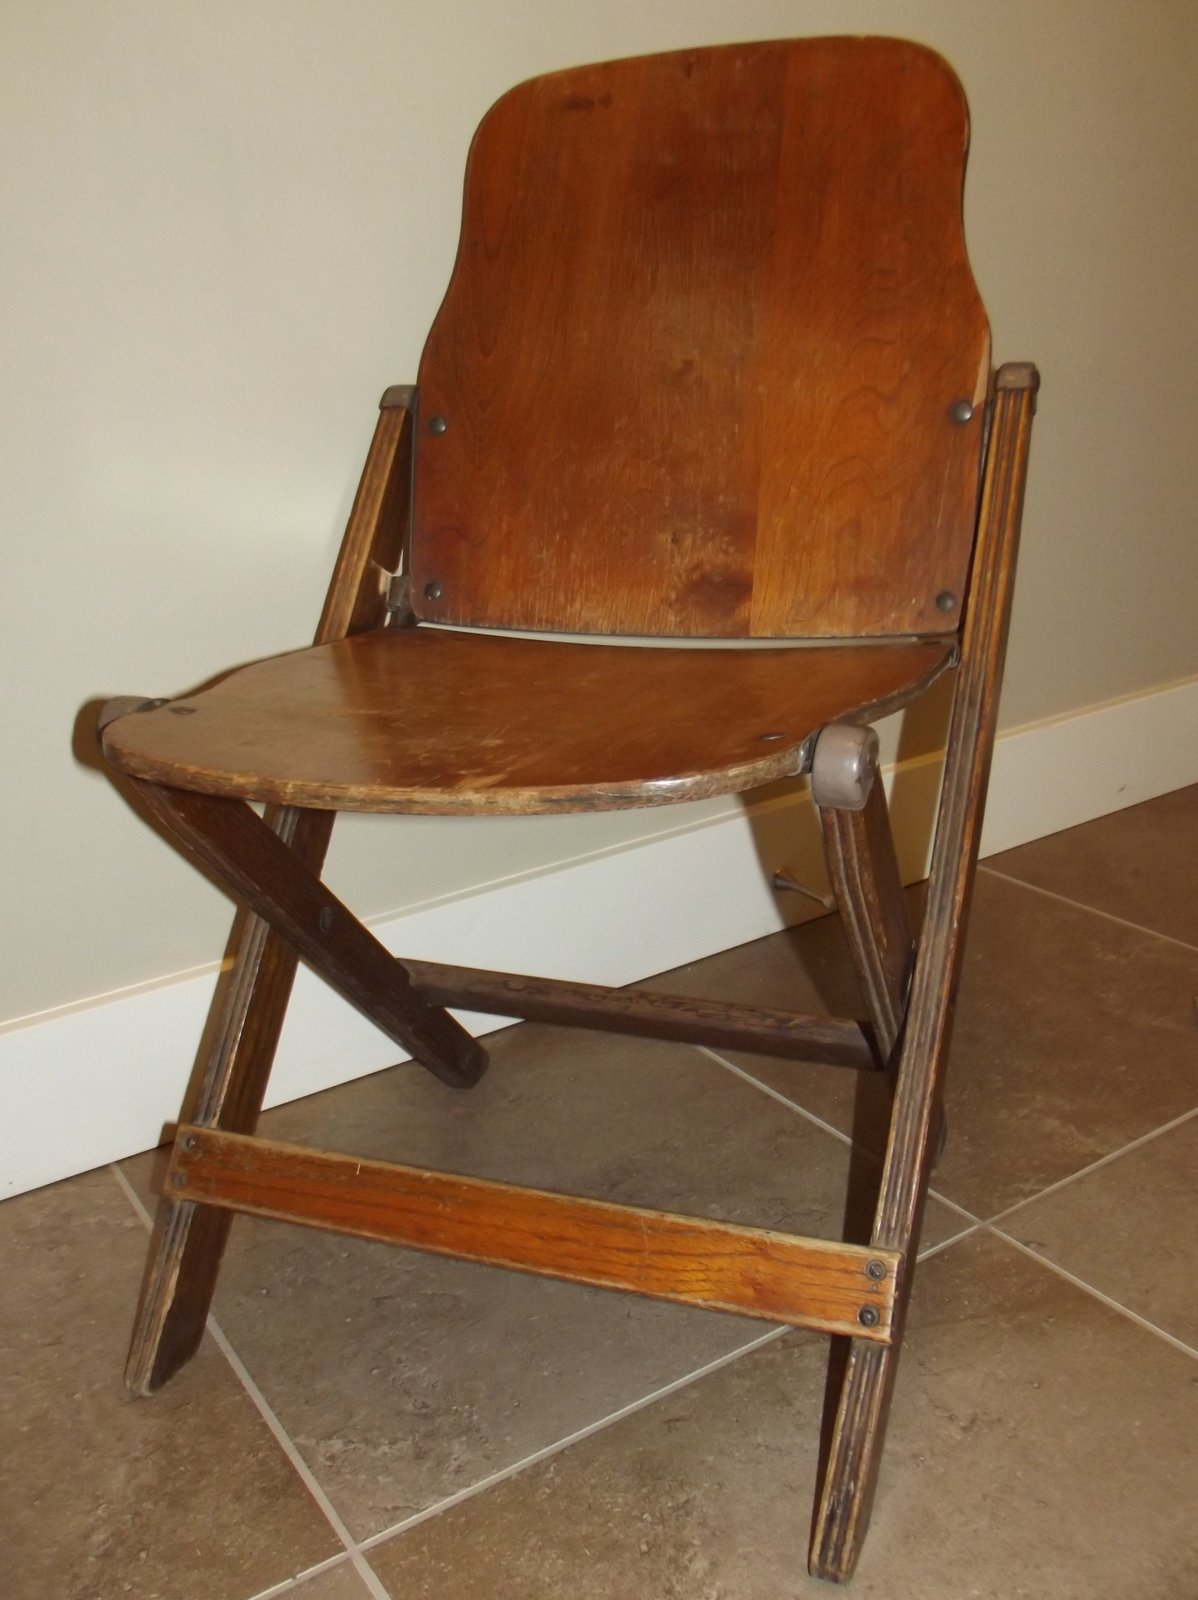 How To Make A Plywood Chair Jerome's Swivel Chairs Sustainable Slow Stylish Vintage Folding